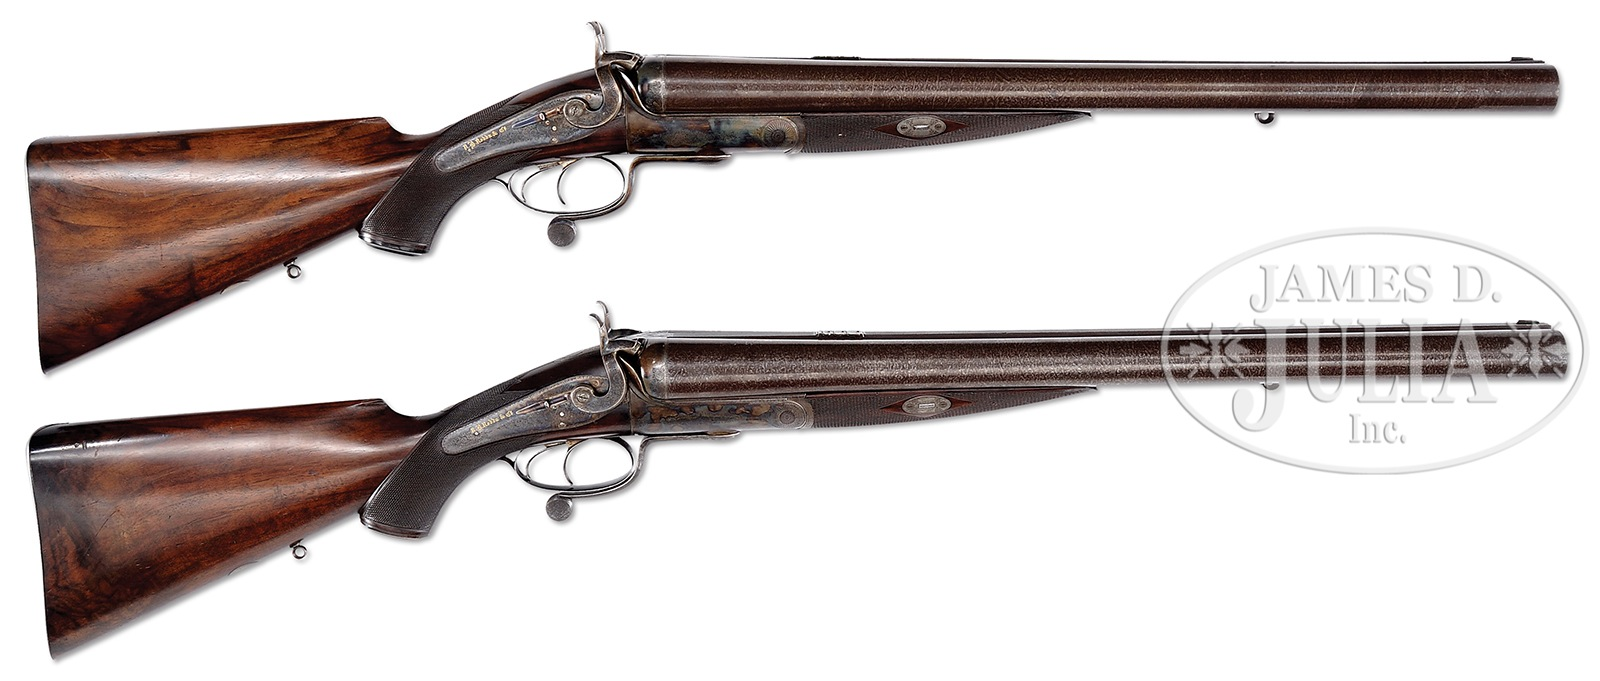 A pair of R.B. Rodda double rifles in four bore. (Picture courtesy James D. Julia Inc.).